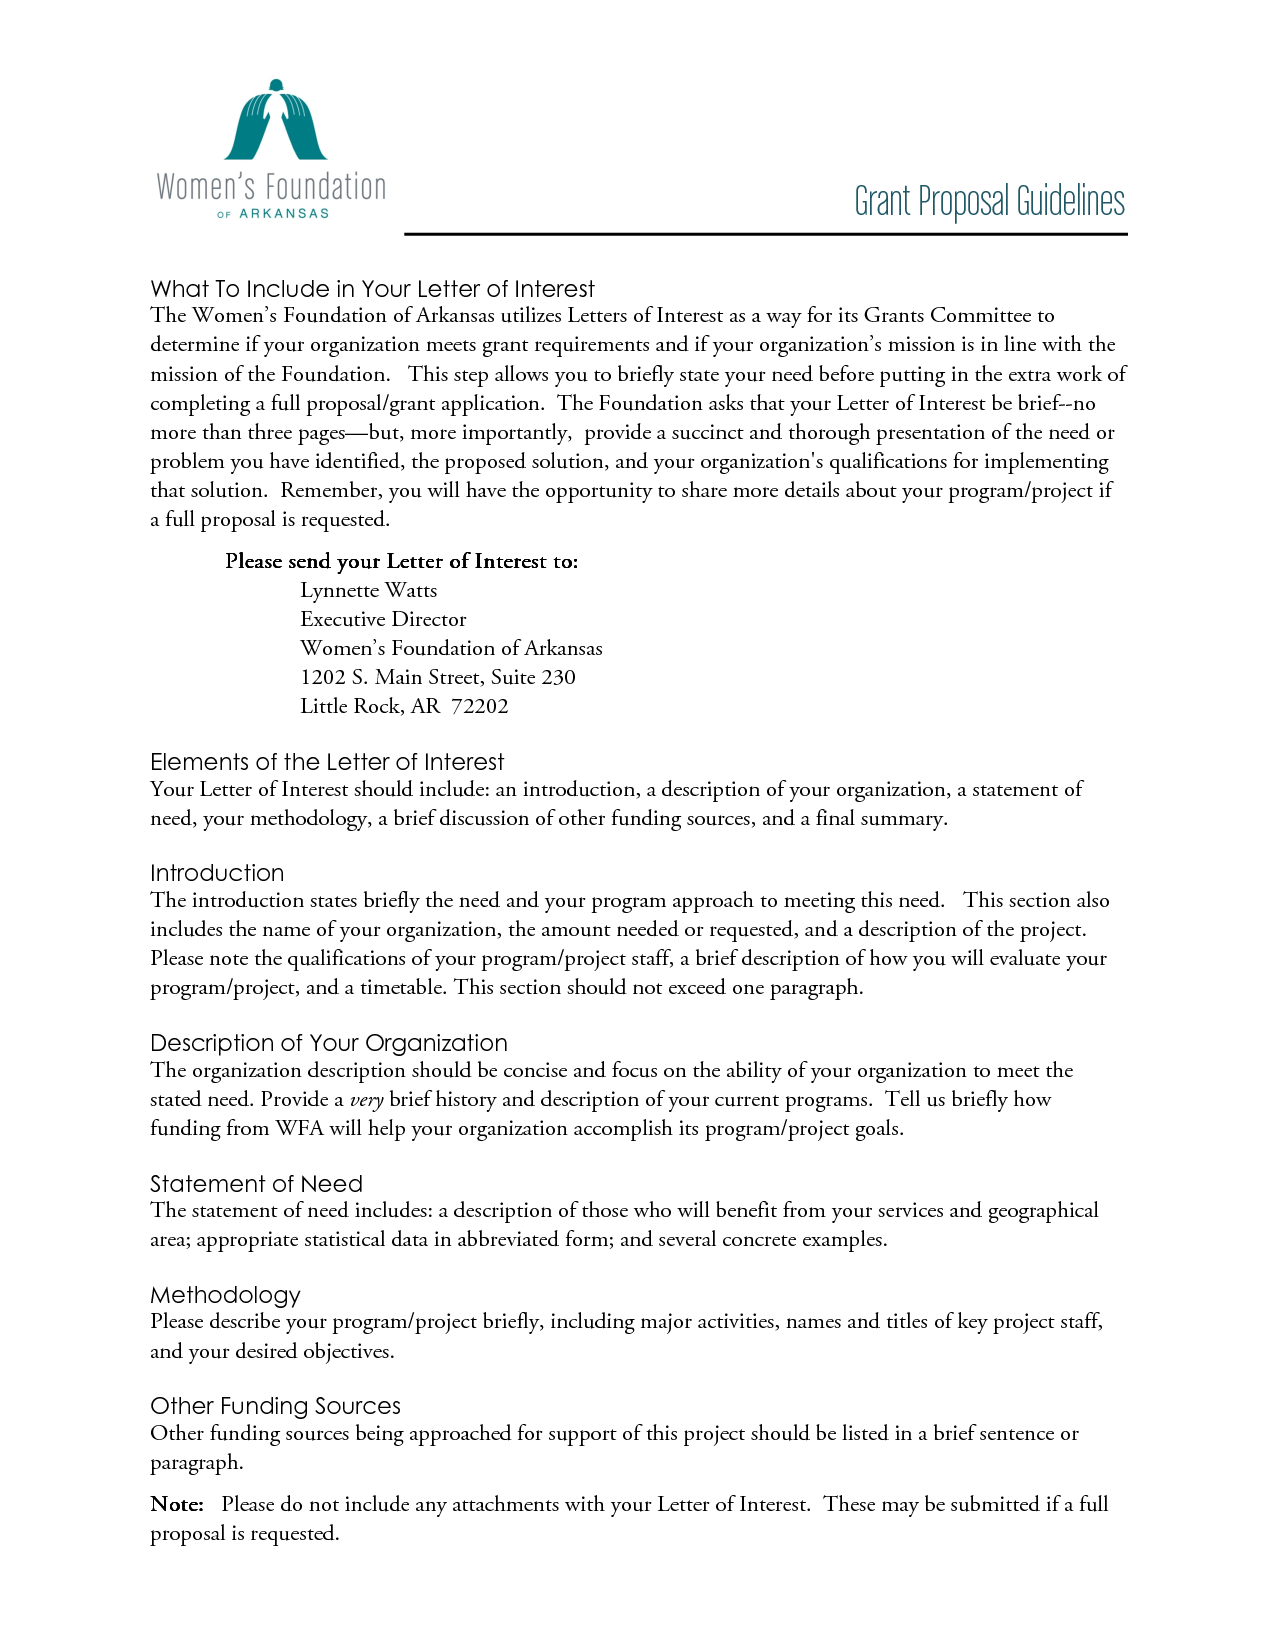 Free letter of interest templates letter of interest for Application for funding letter template